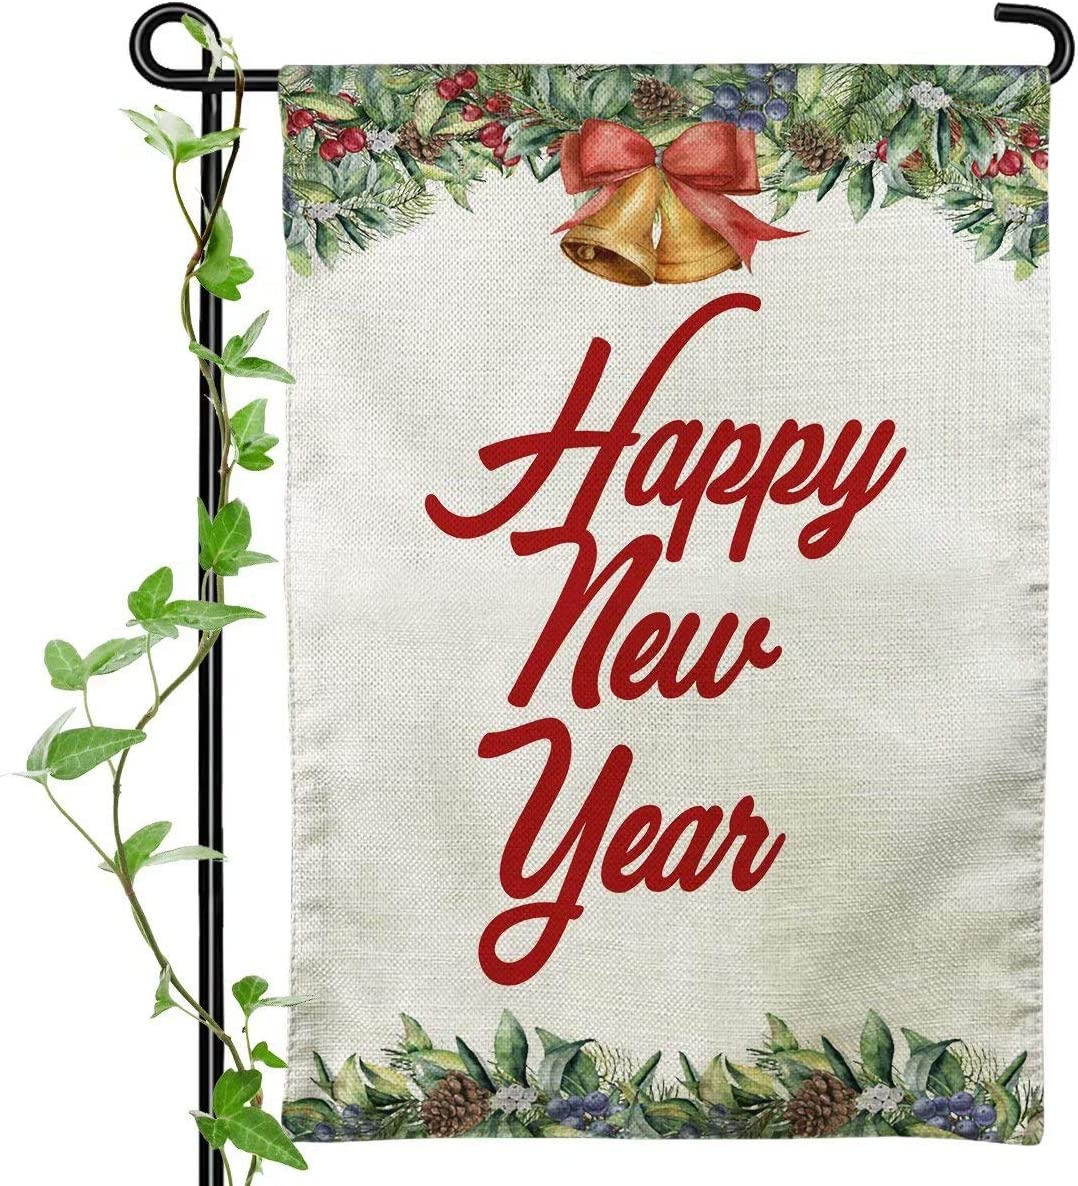 Happy New Year Garden Flag - Bells and Pine Cones - Winter Seasonal Outdoor Flags 12x18 Double Sided Small Garden Flag for Home House Lawn Patio Outside Decorations